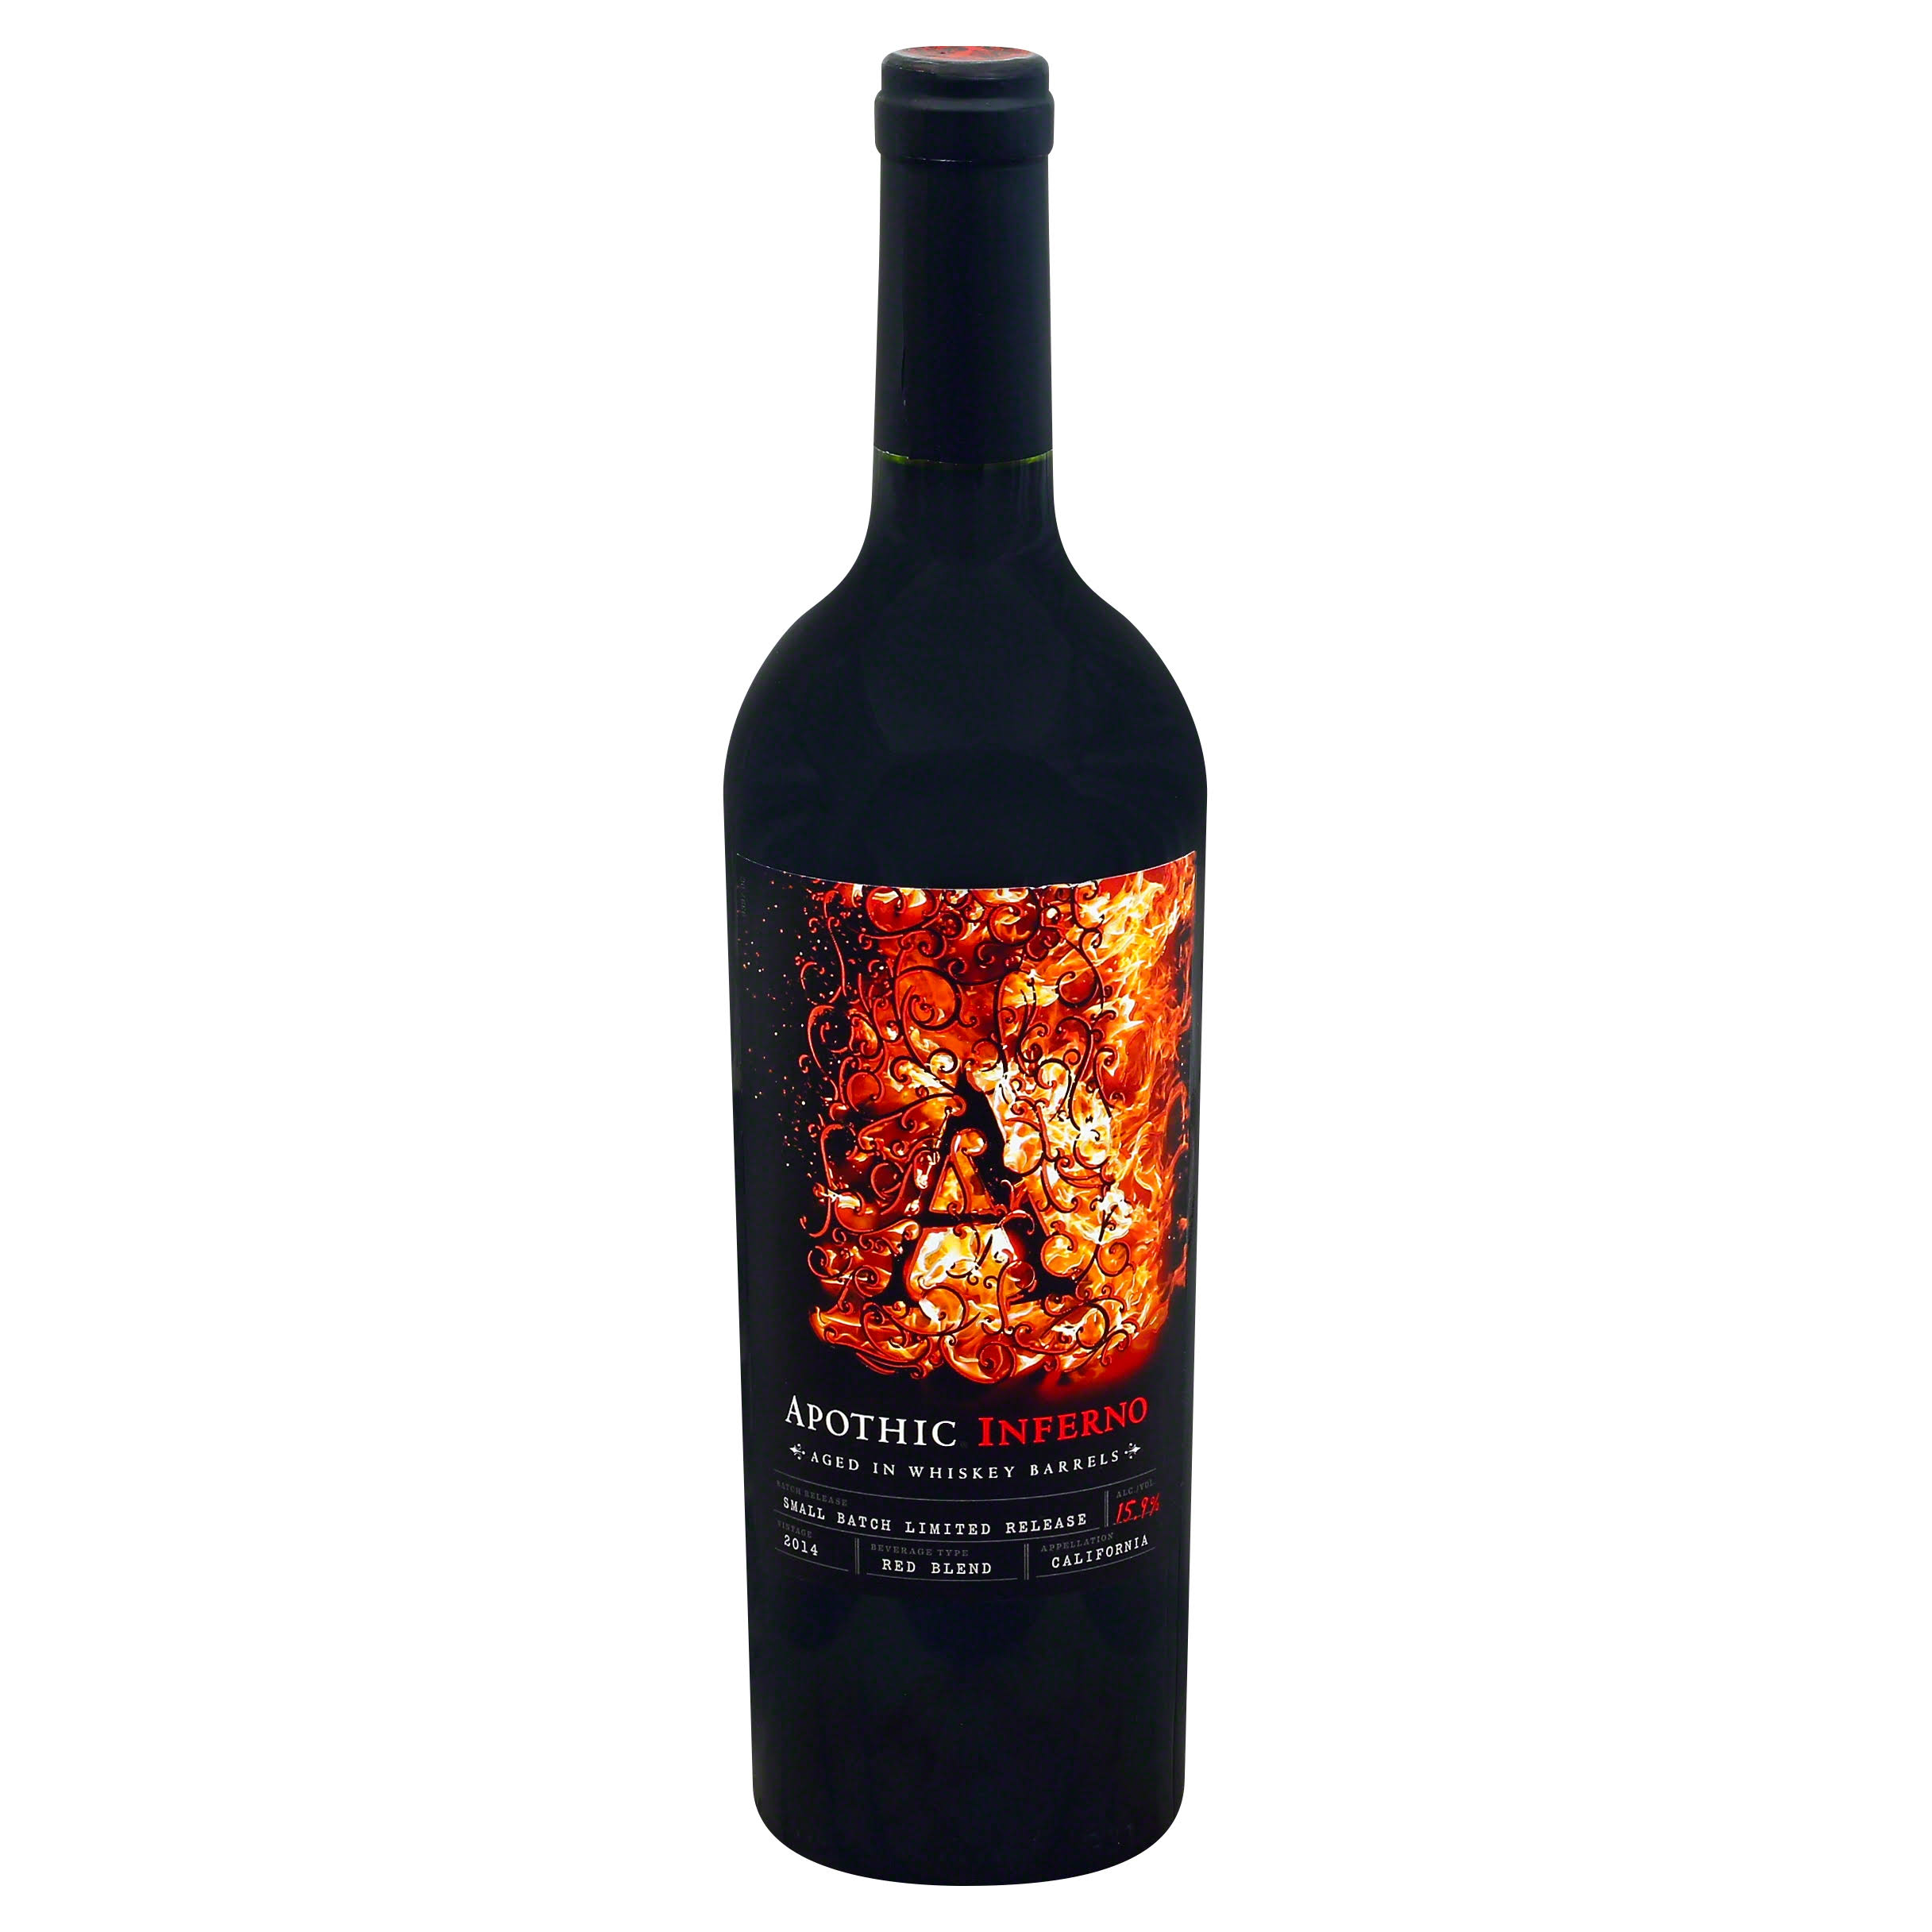 Apothic Red Blend, Inferno, California, 2014 - 750 ml